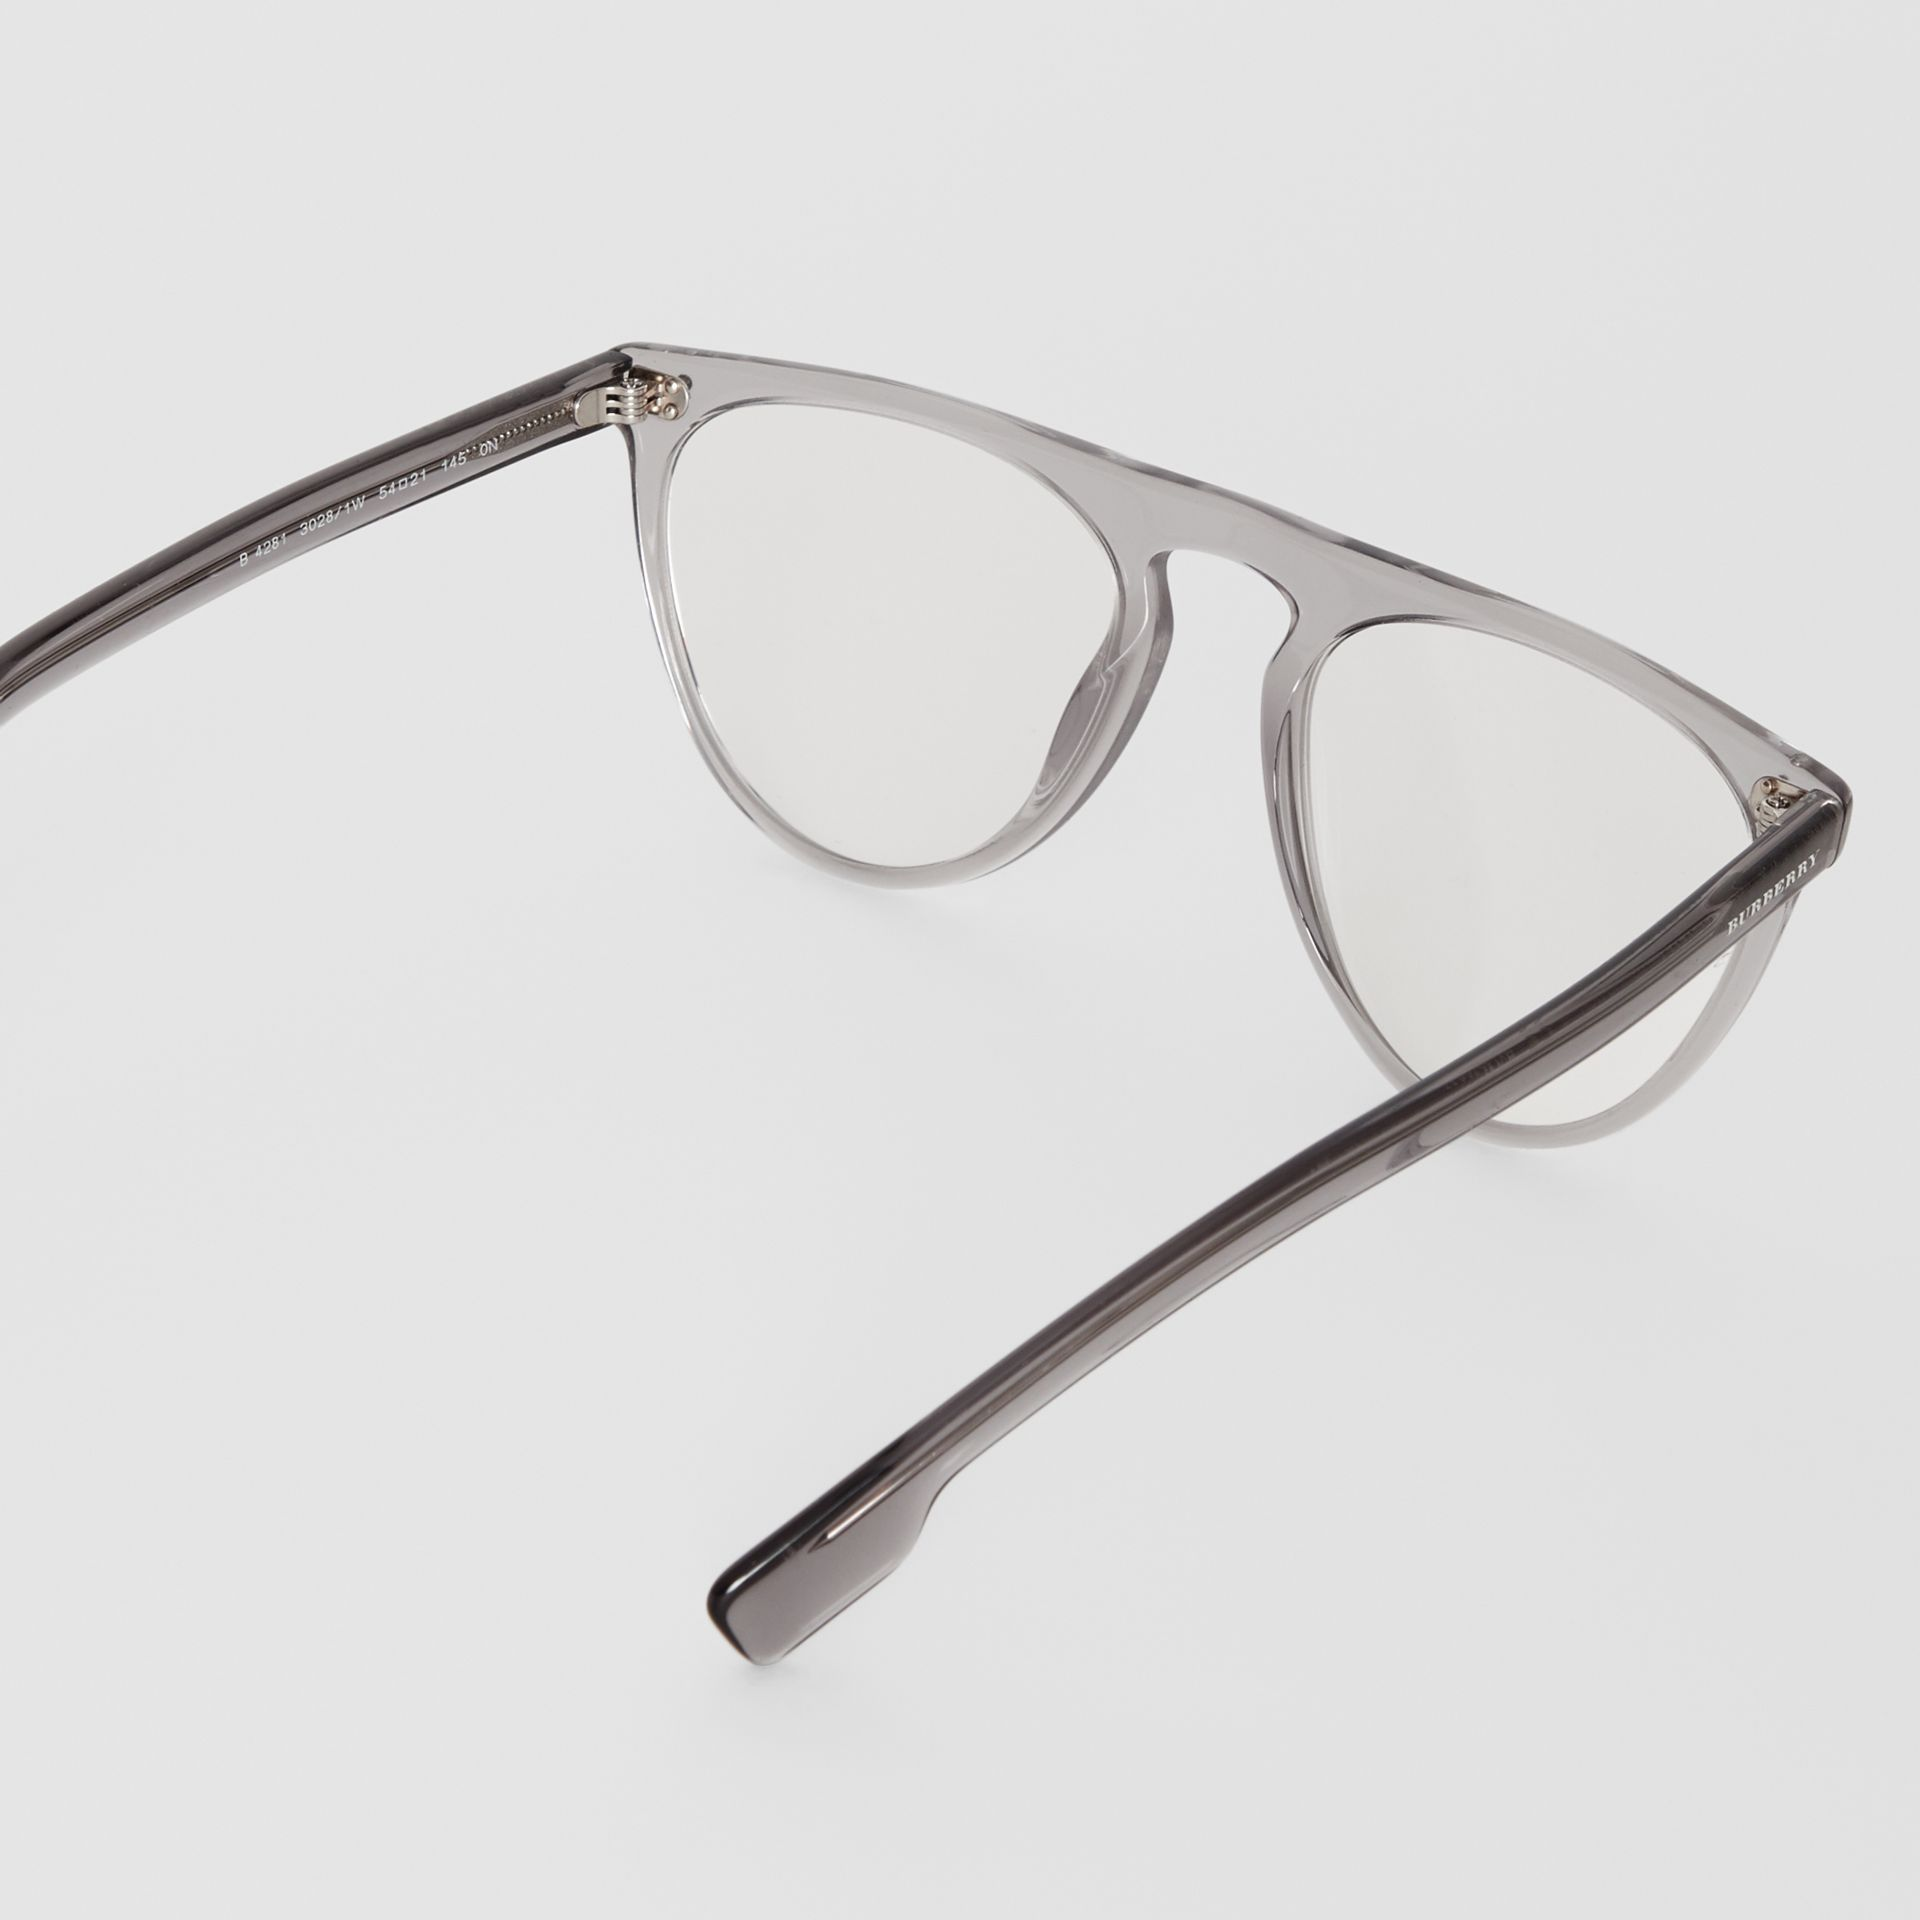 Keyhole D-shaped Optical Frames in Grey - Men | Burberry Singapore - gallery image 4